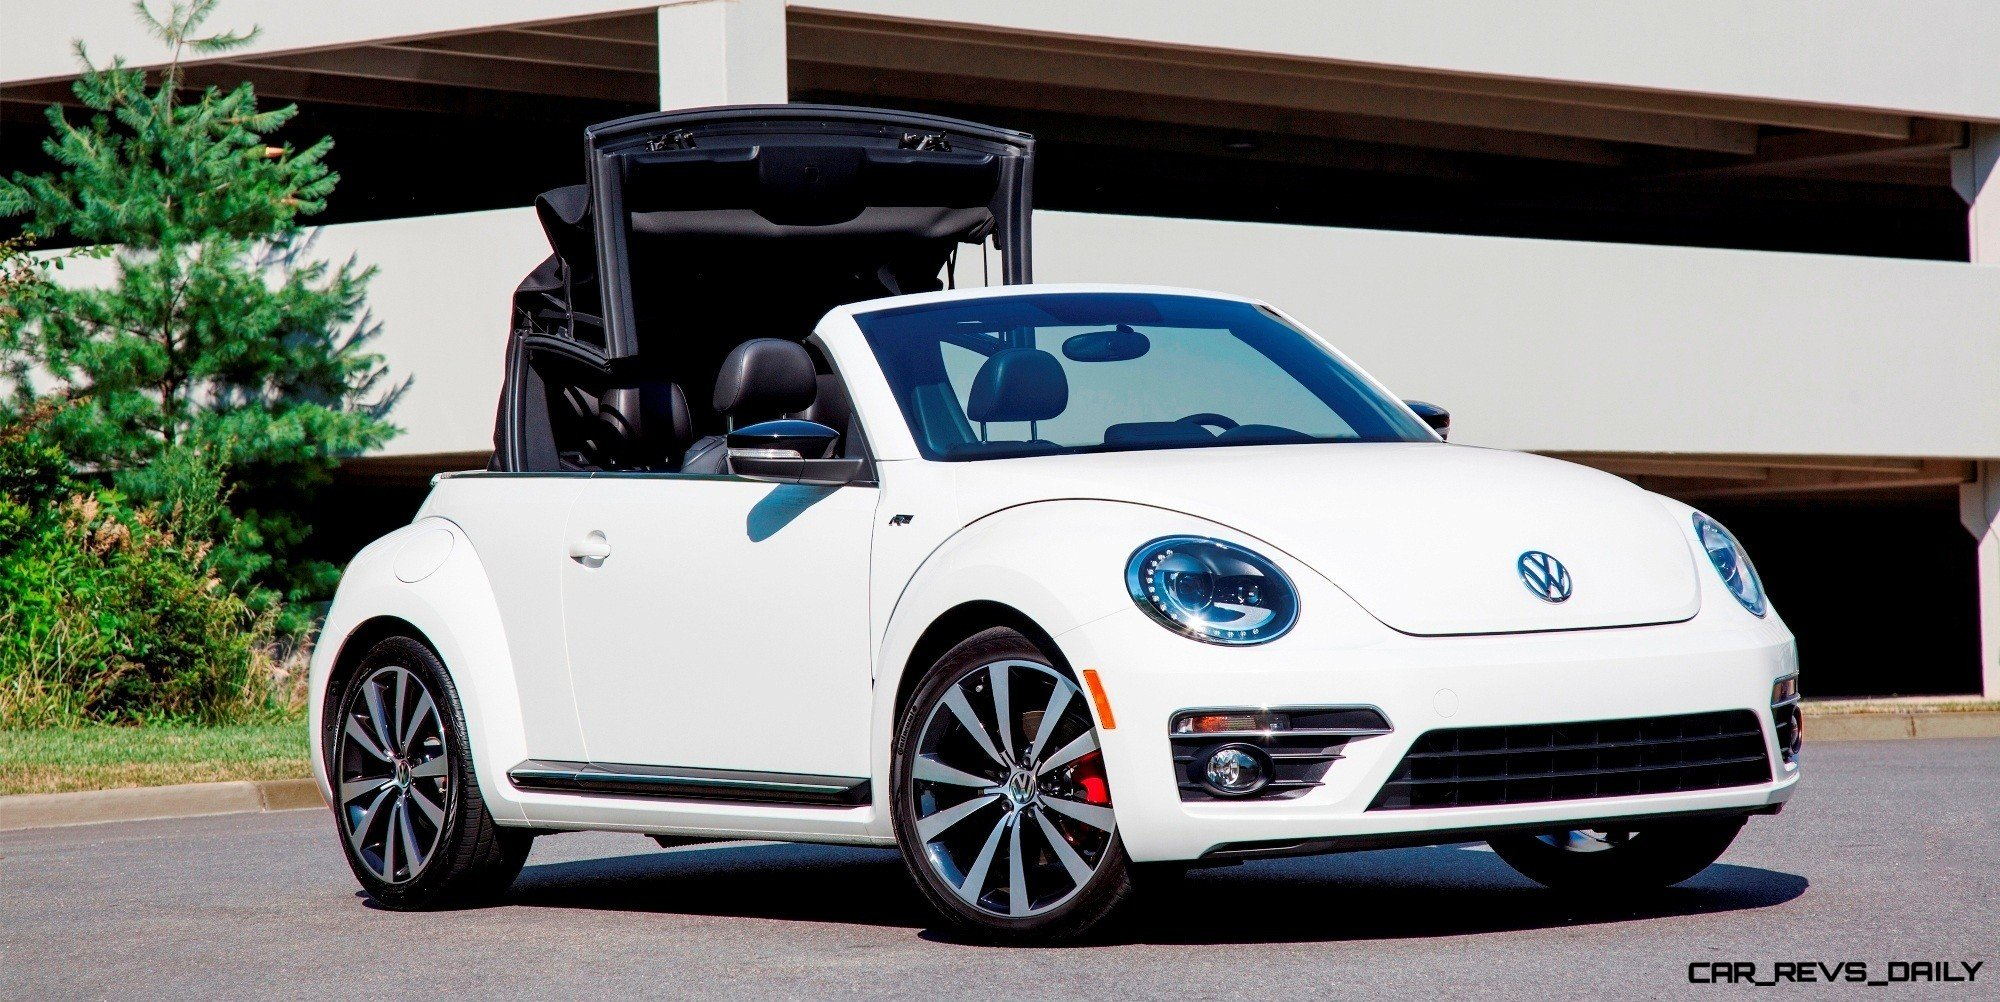 CarRevsDaily.com 2014 Beetle R line Cab 6 photo